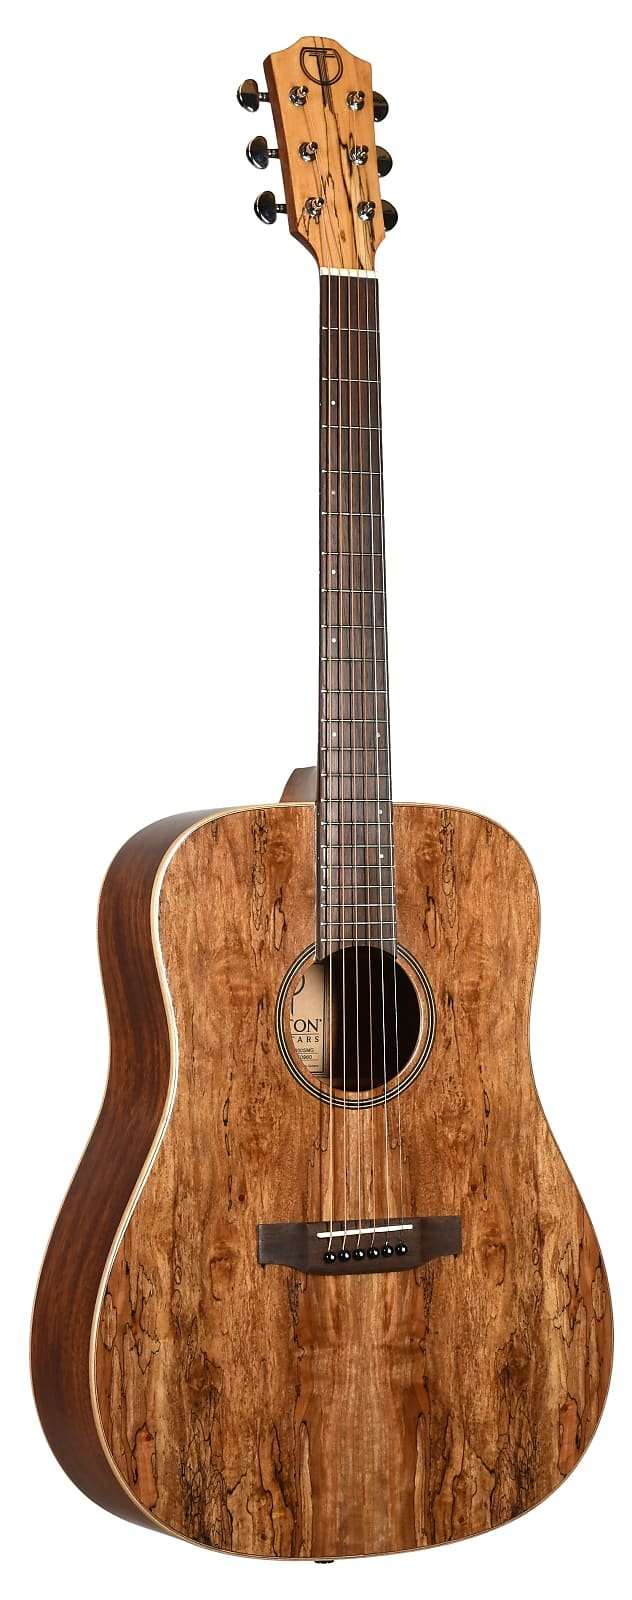 Exotic Top Spalted Maple Dreadnought